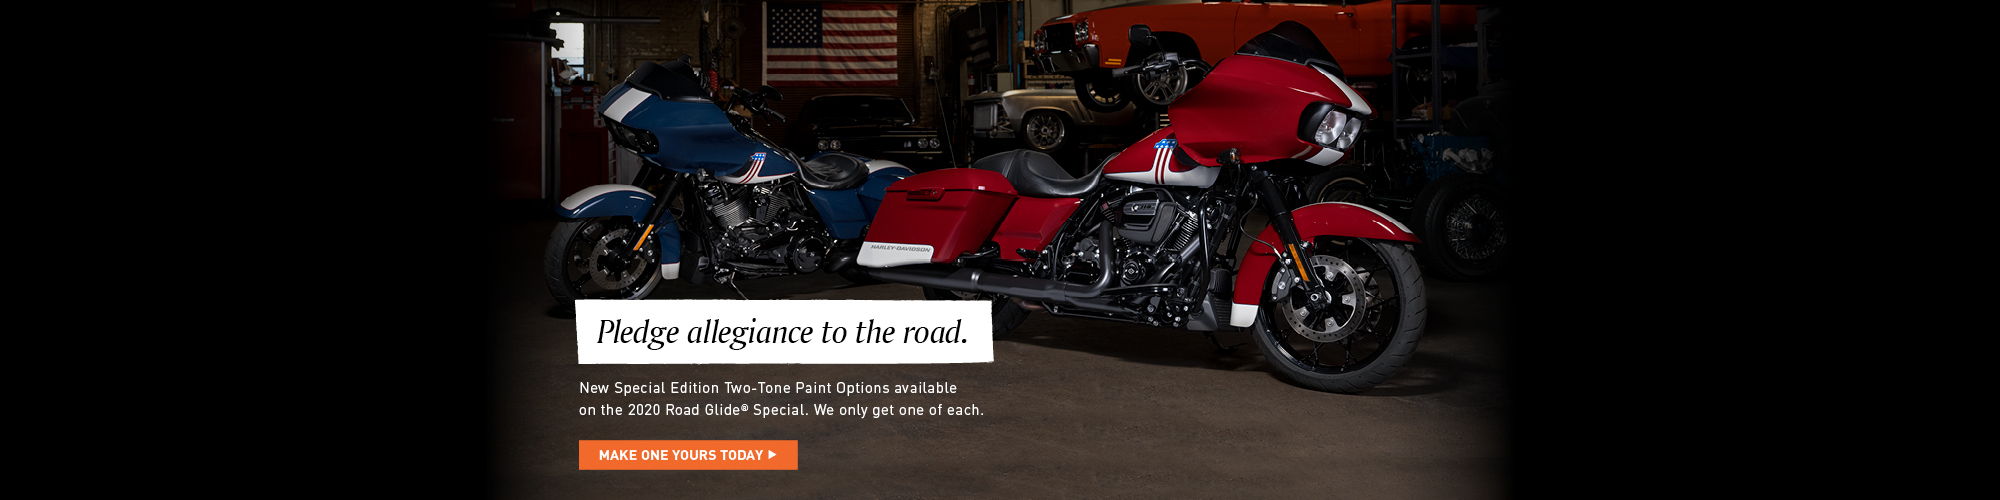 Special Edition Road Glide Two-Tone at Williams Harley-Davidson